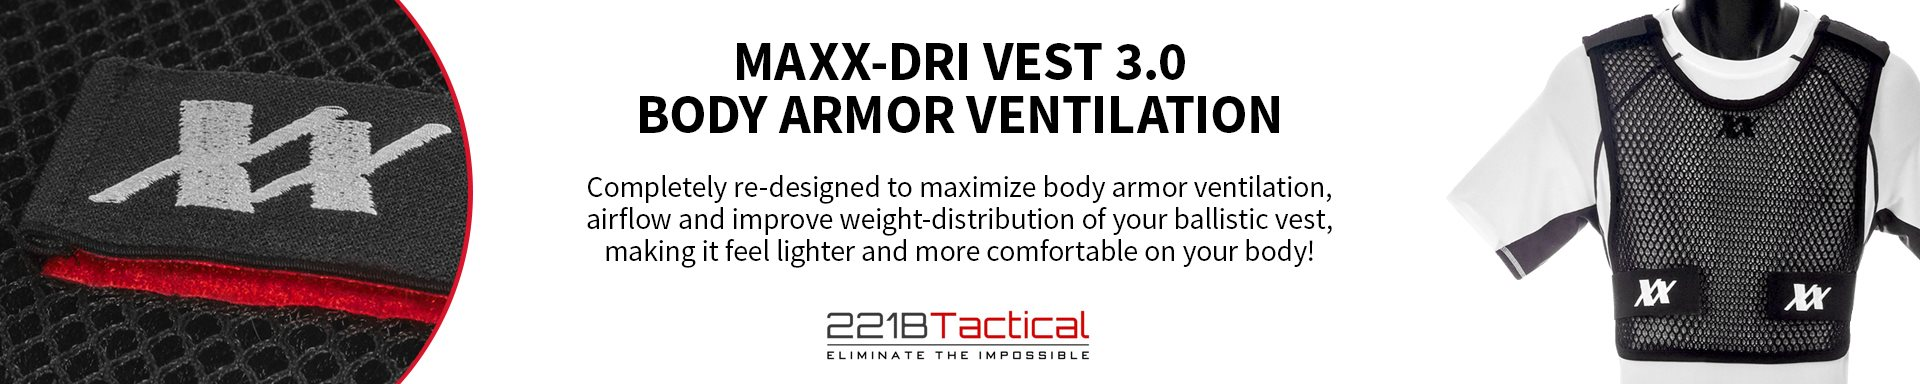 221B Tactical - Maxx-Dri Vest 3.0